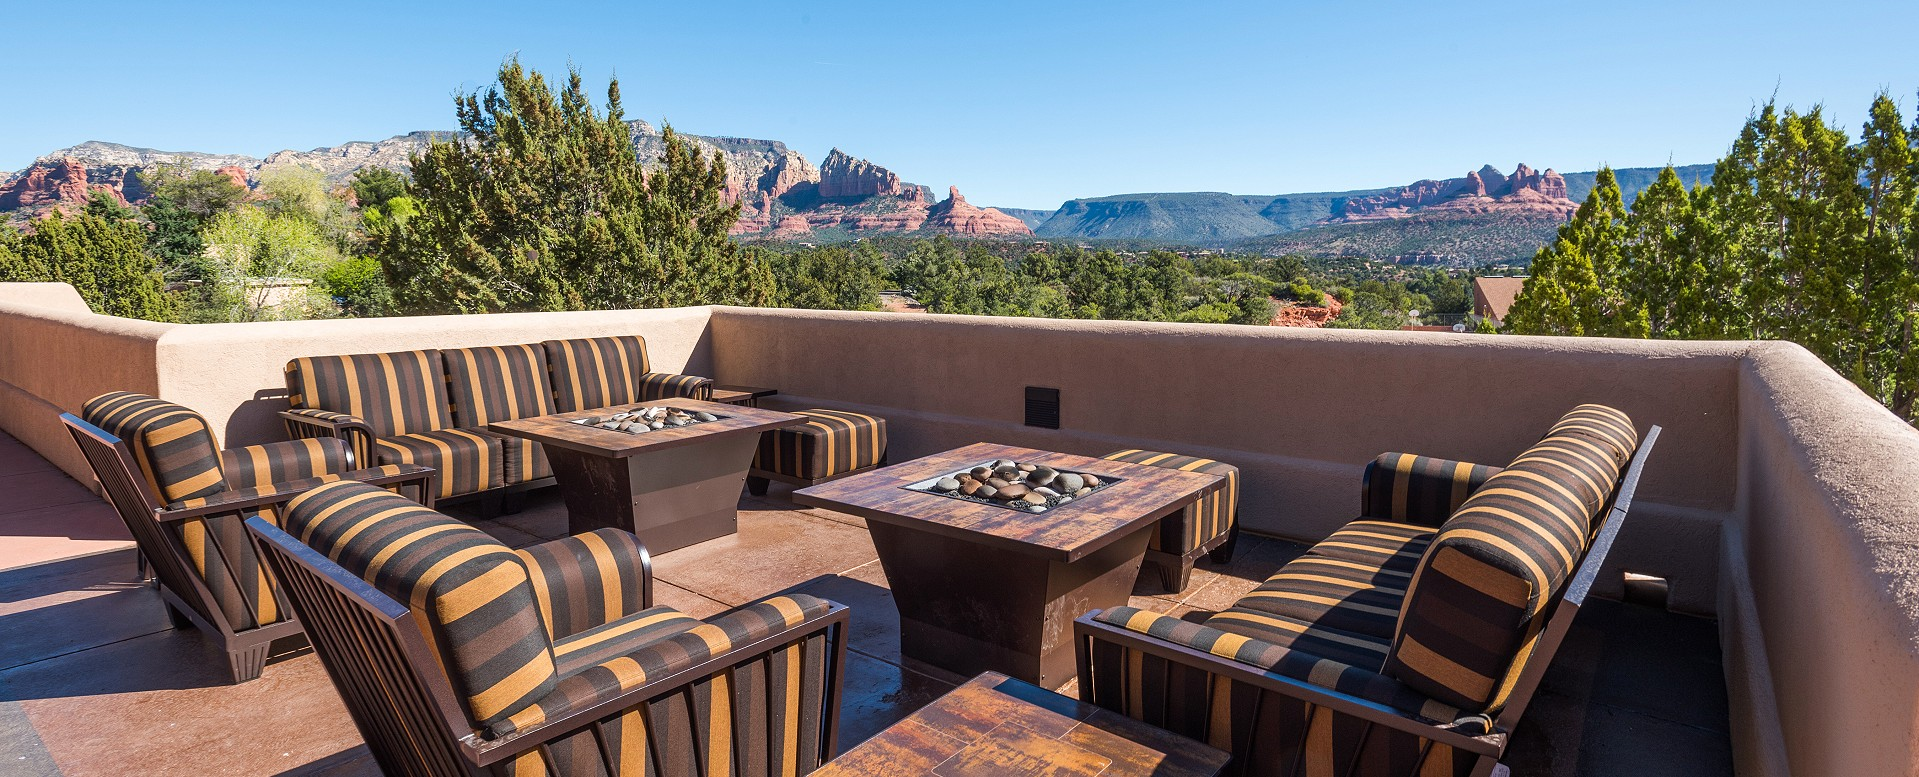 Best Western Plus Inn of Sedona-Terrace